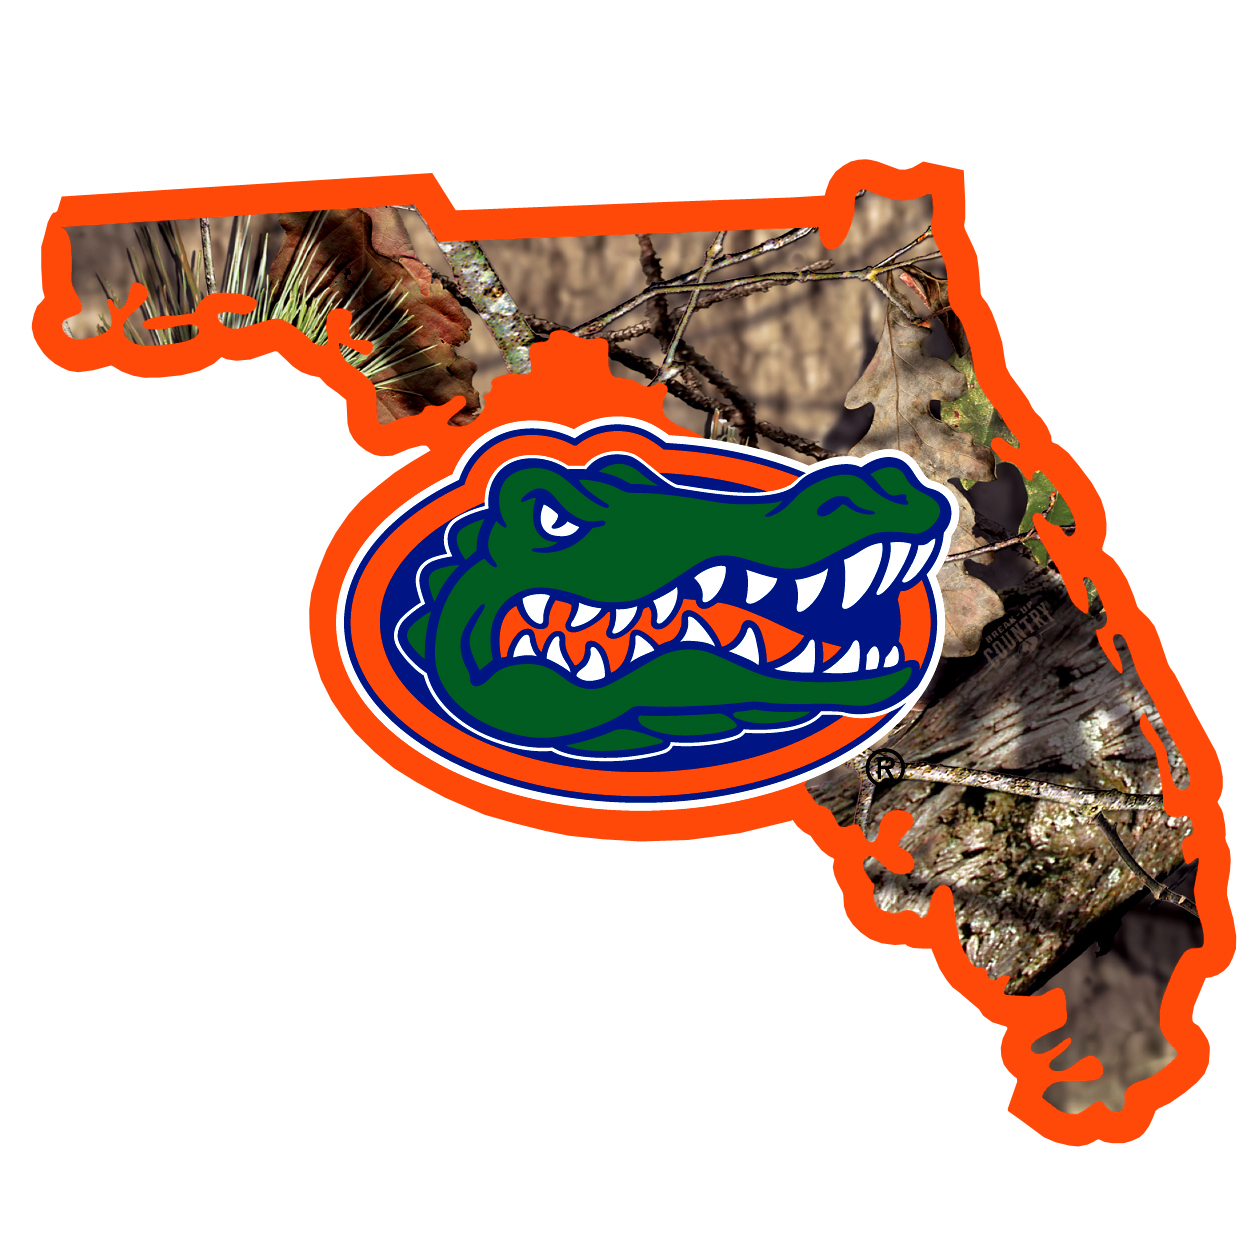 Florida Gators State Decal w/Mossy Oak Camo - It's a home state decal with a sporty twist! This Florida Gators decal features the team logo over a silhouette of the state in team colors and Mossy Oak camo and a helmet marking the home of the team. The decal is approximately 5 inches on repositionable vinyl.